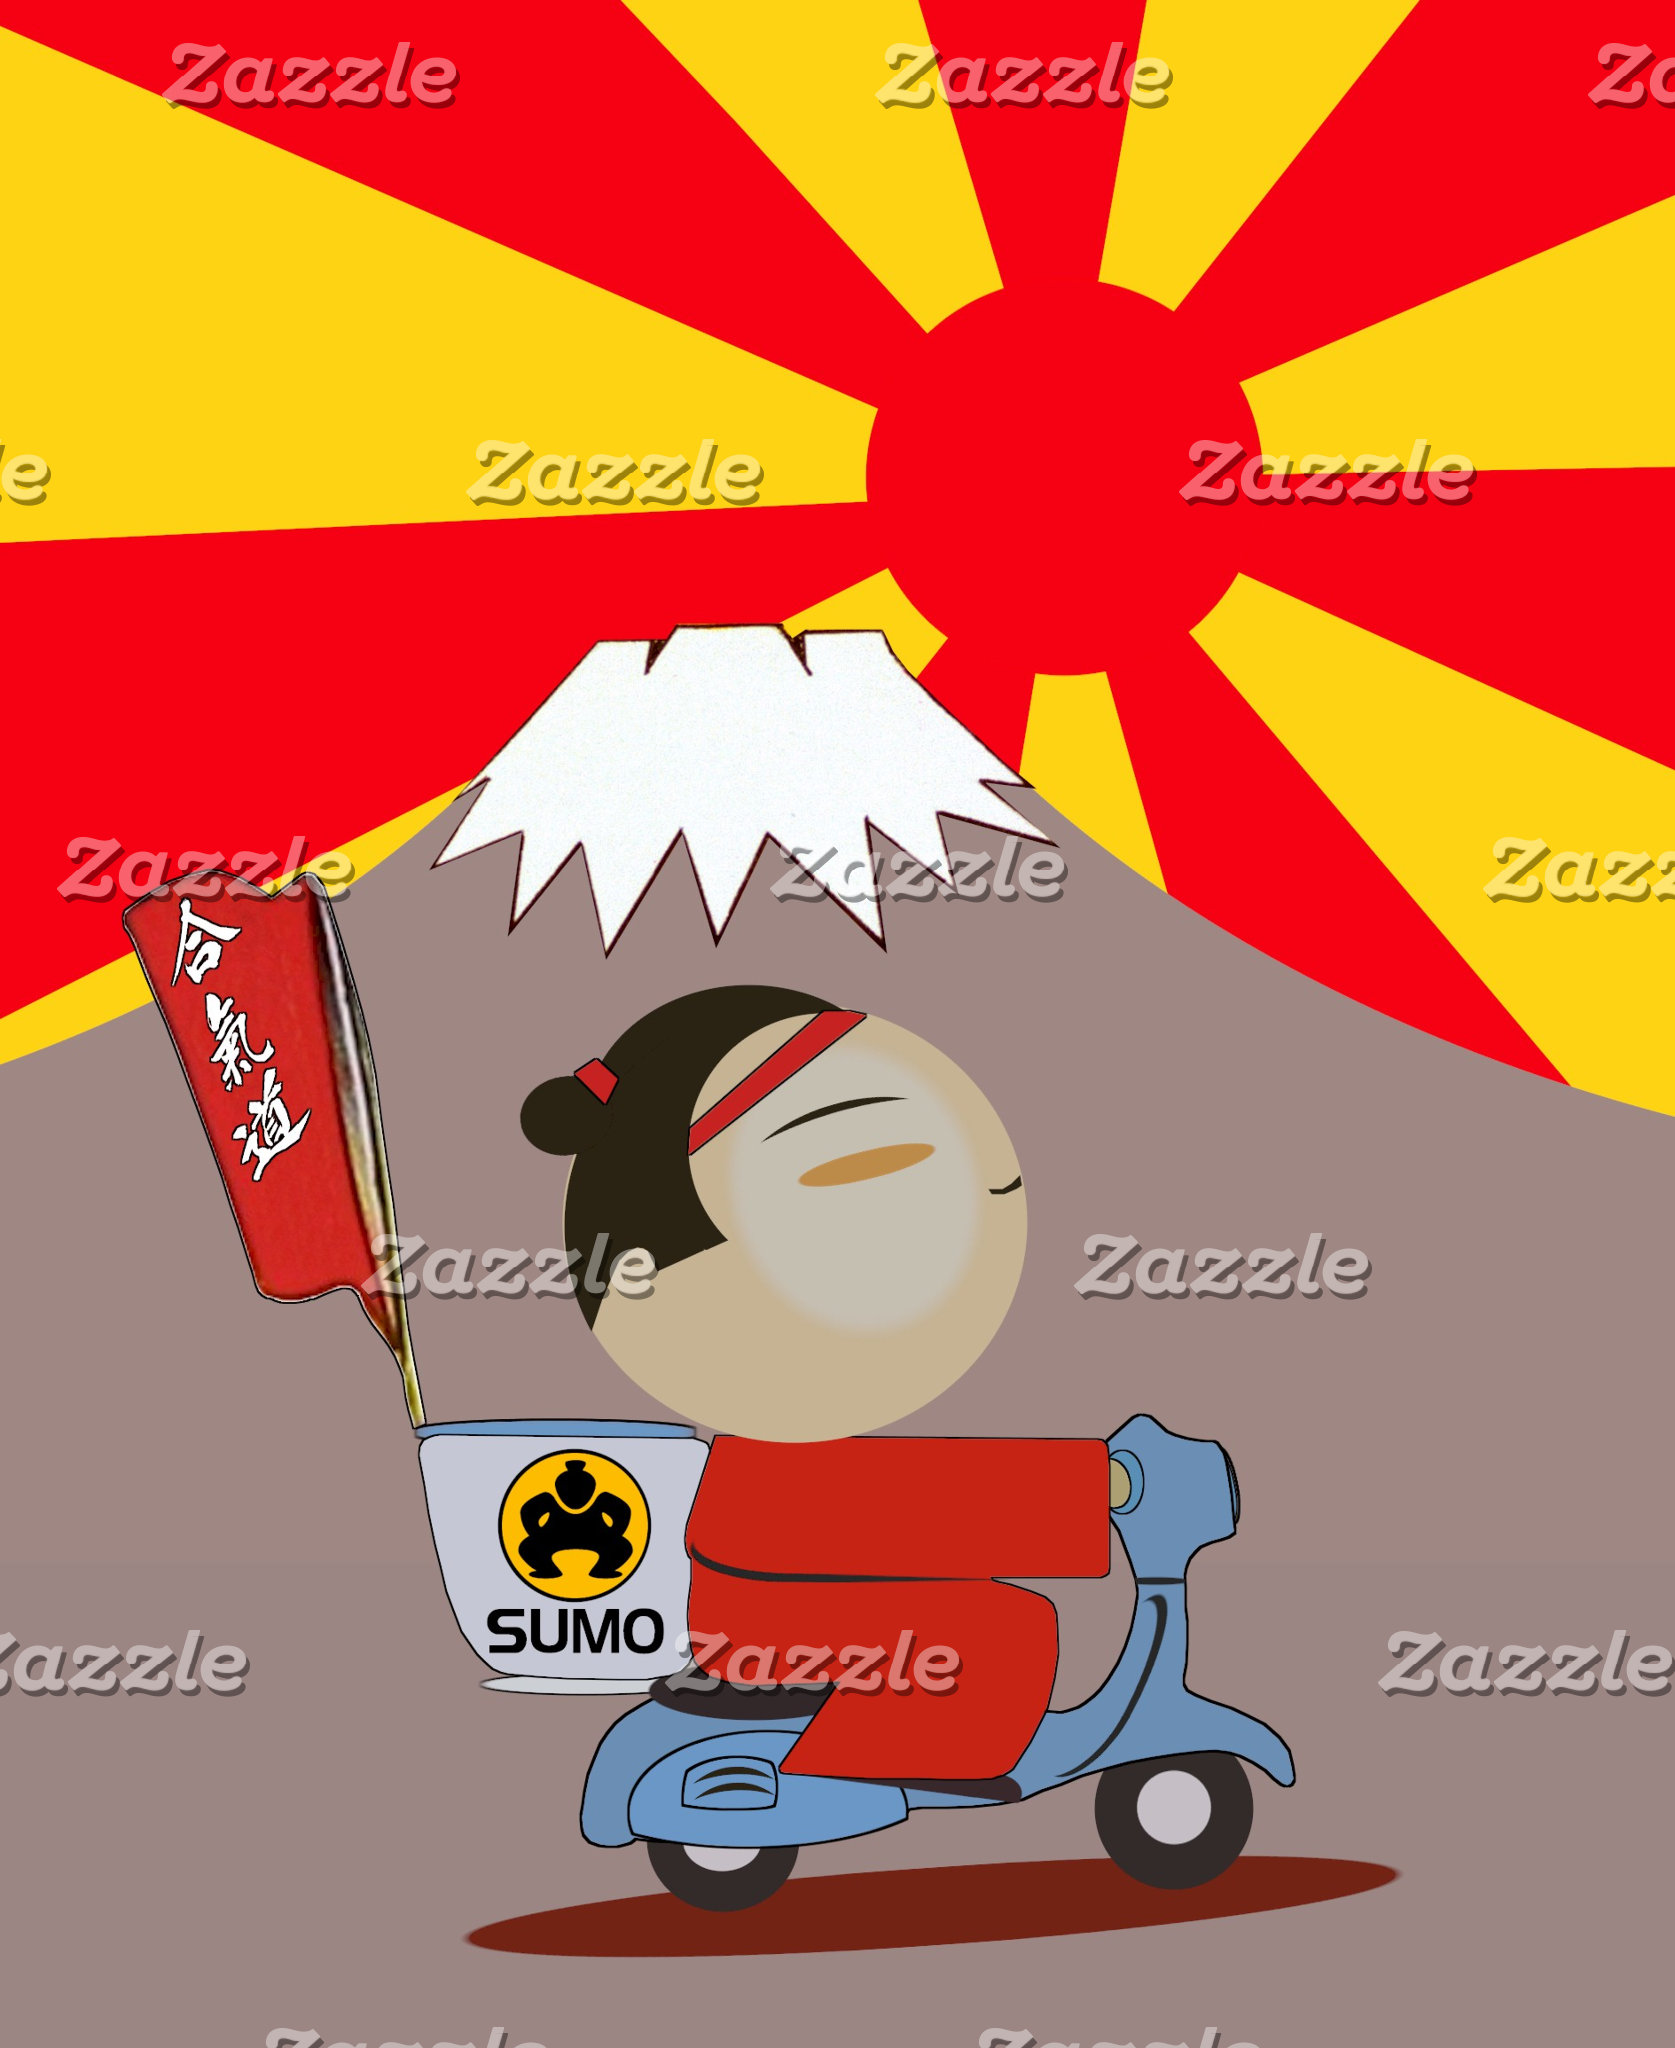 Scooter Sumo